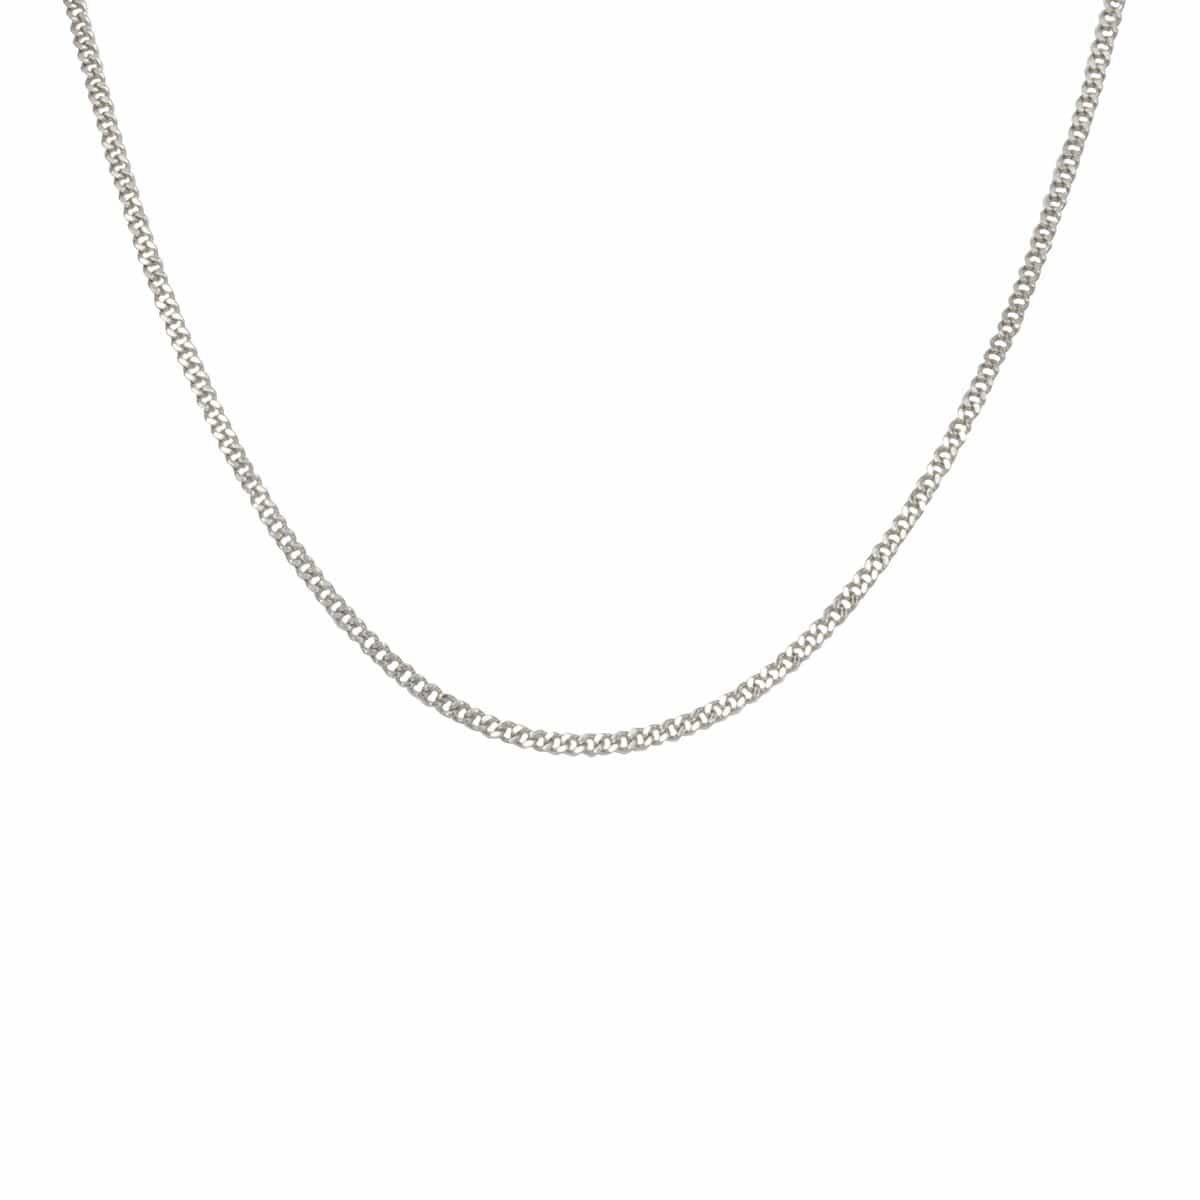 Silver Stainless Steel 2mm Two-Face Diamond Cut Design Chain